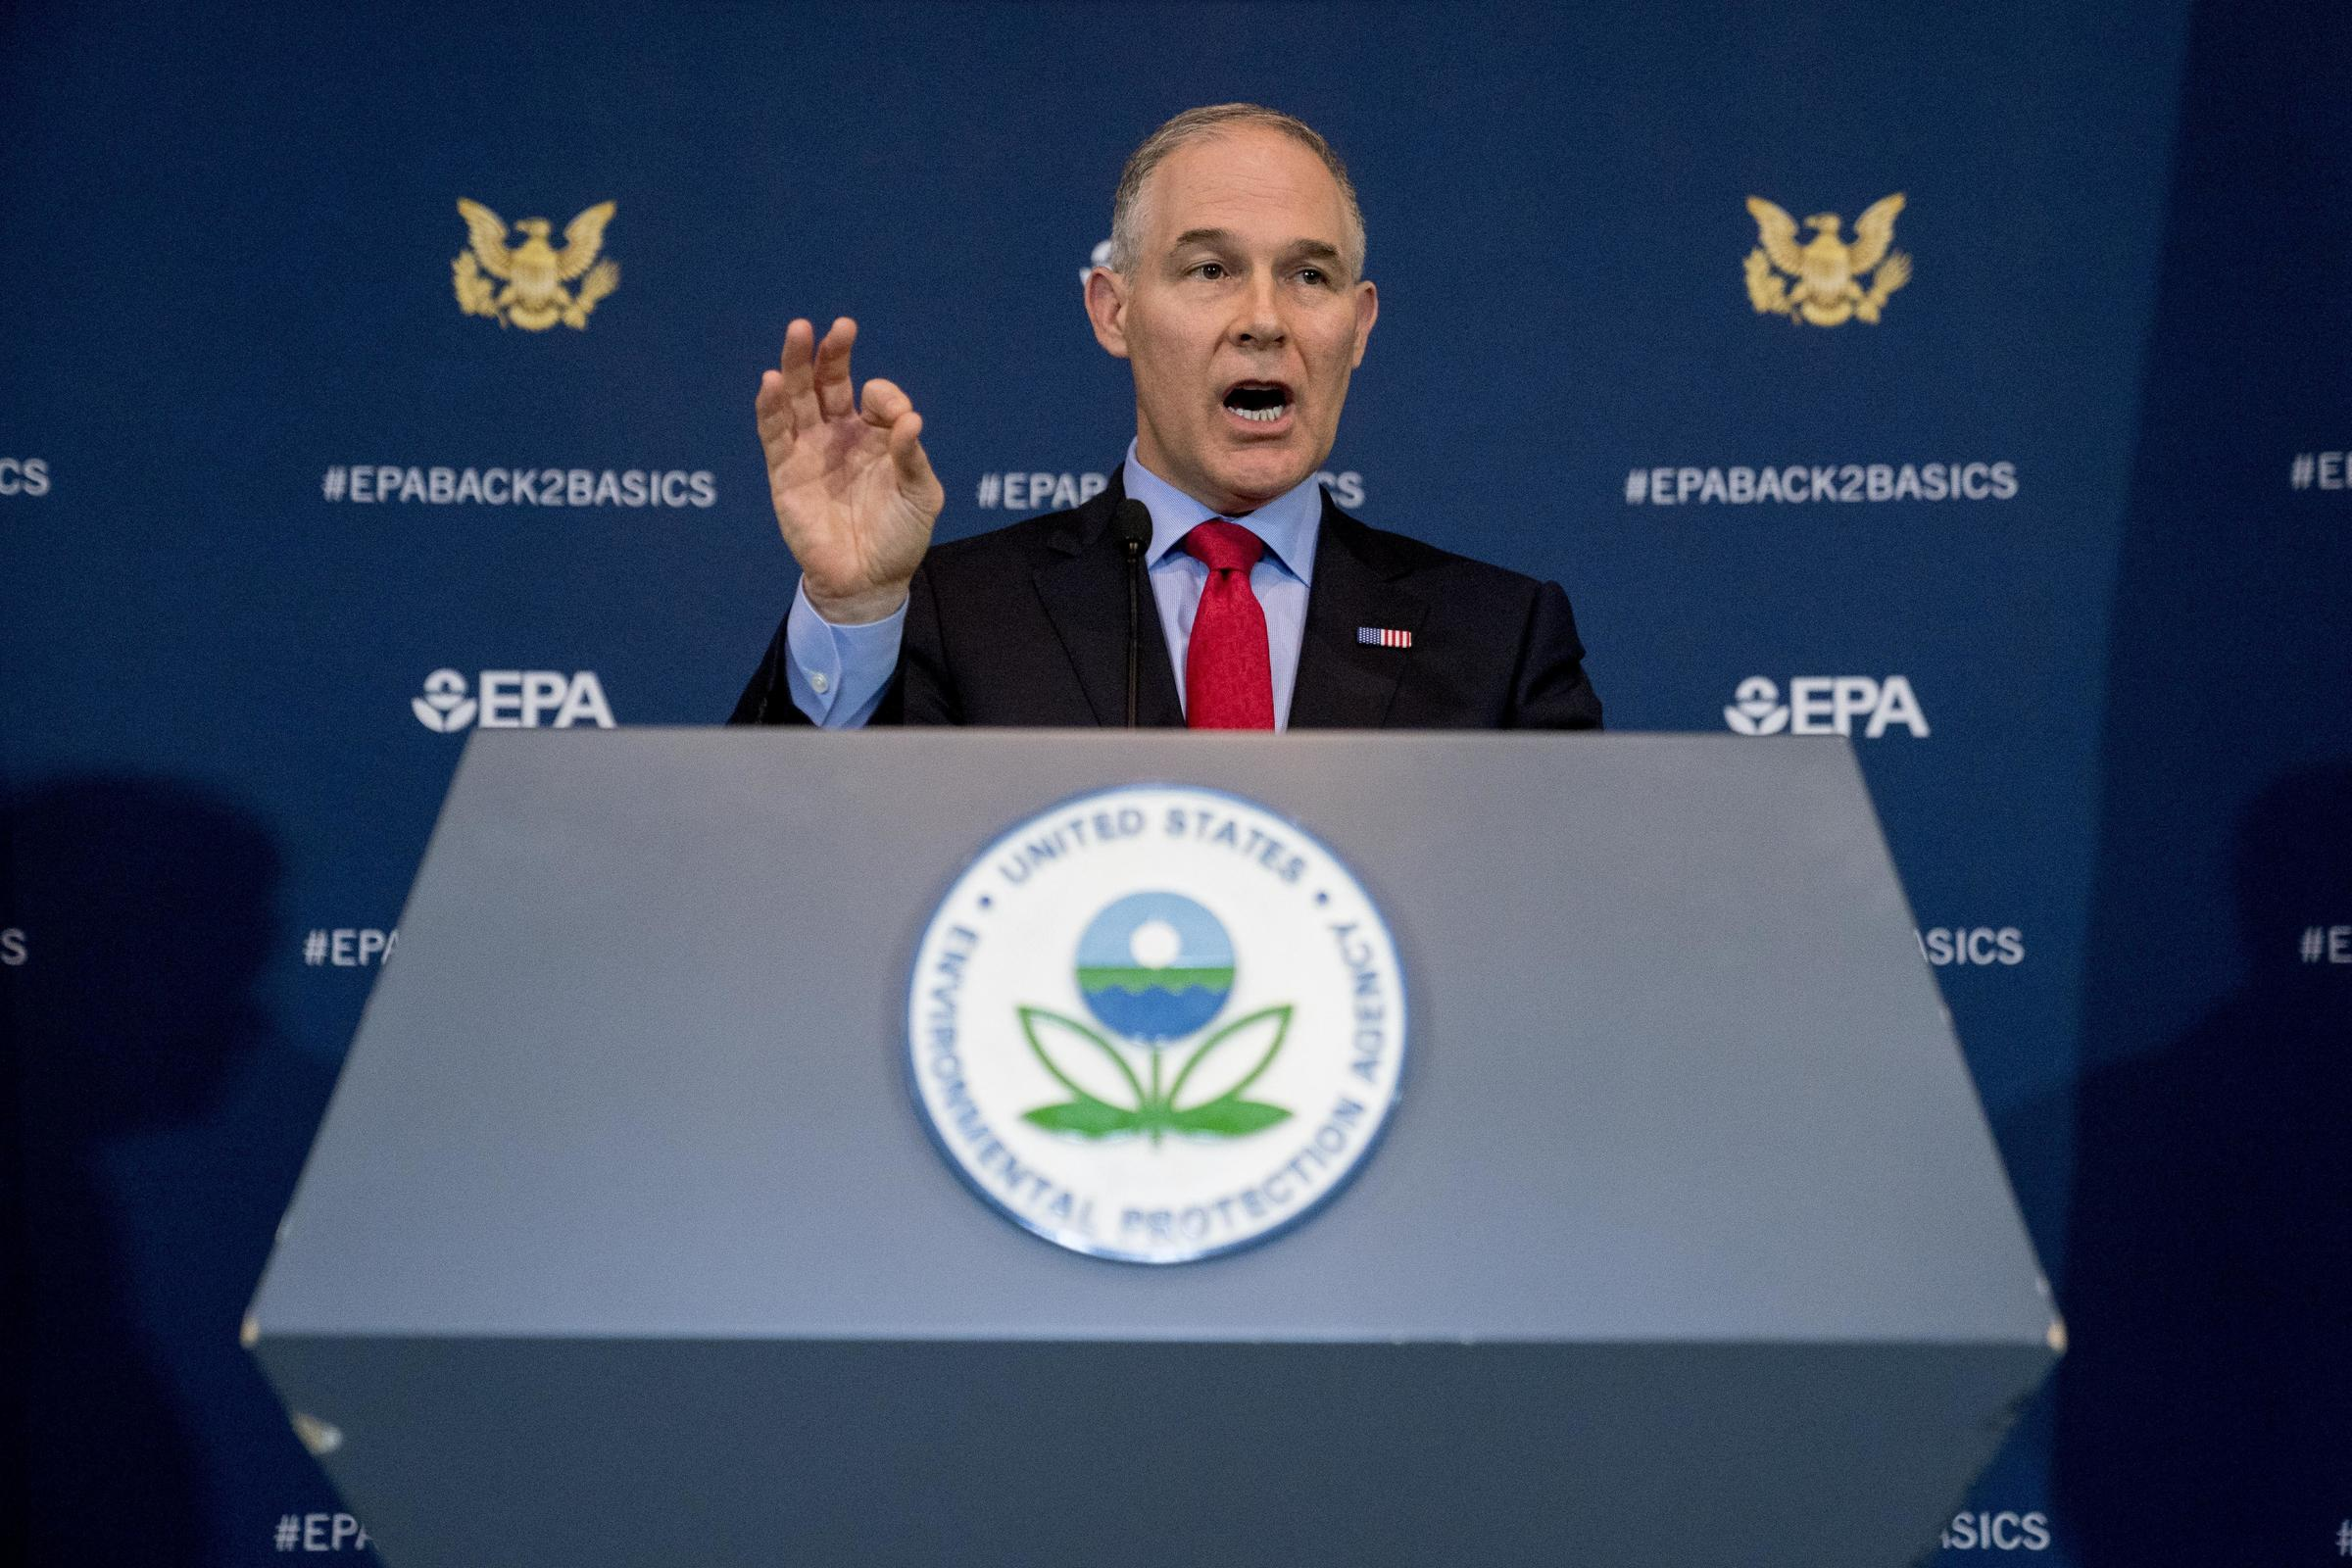 14 States Suing EPA Over Methane Emissions